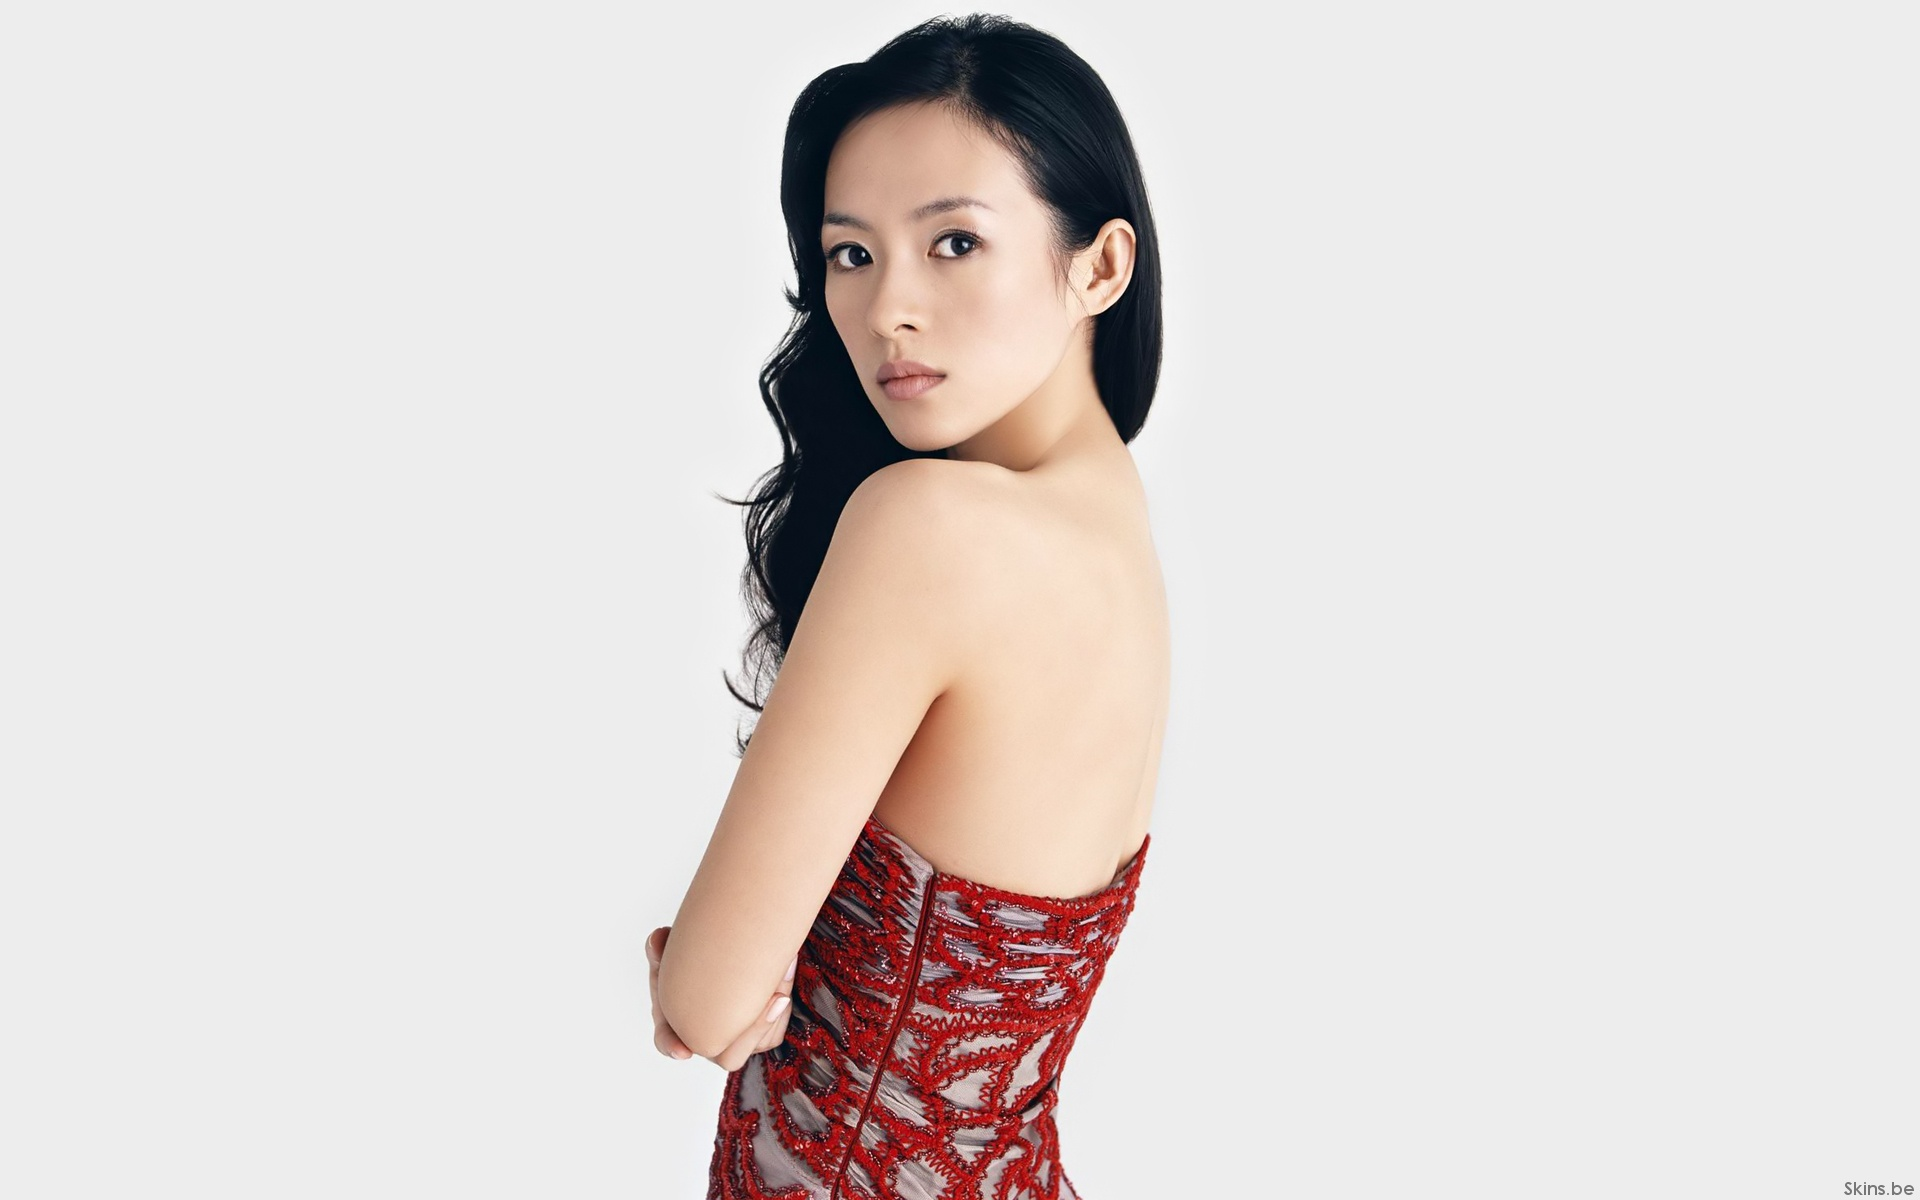 Zhang Ziyi Wallpapers, Pictures, Images